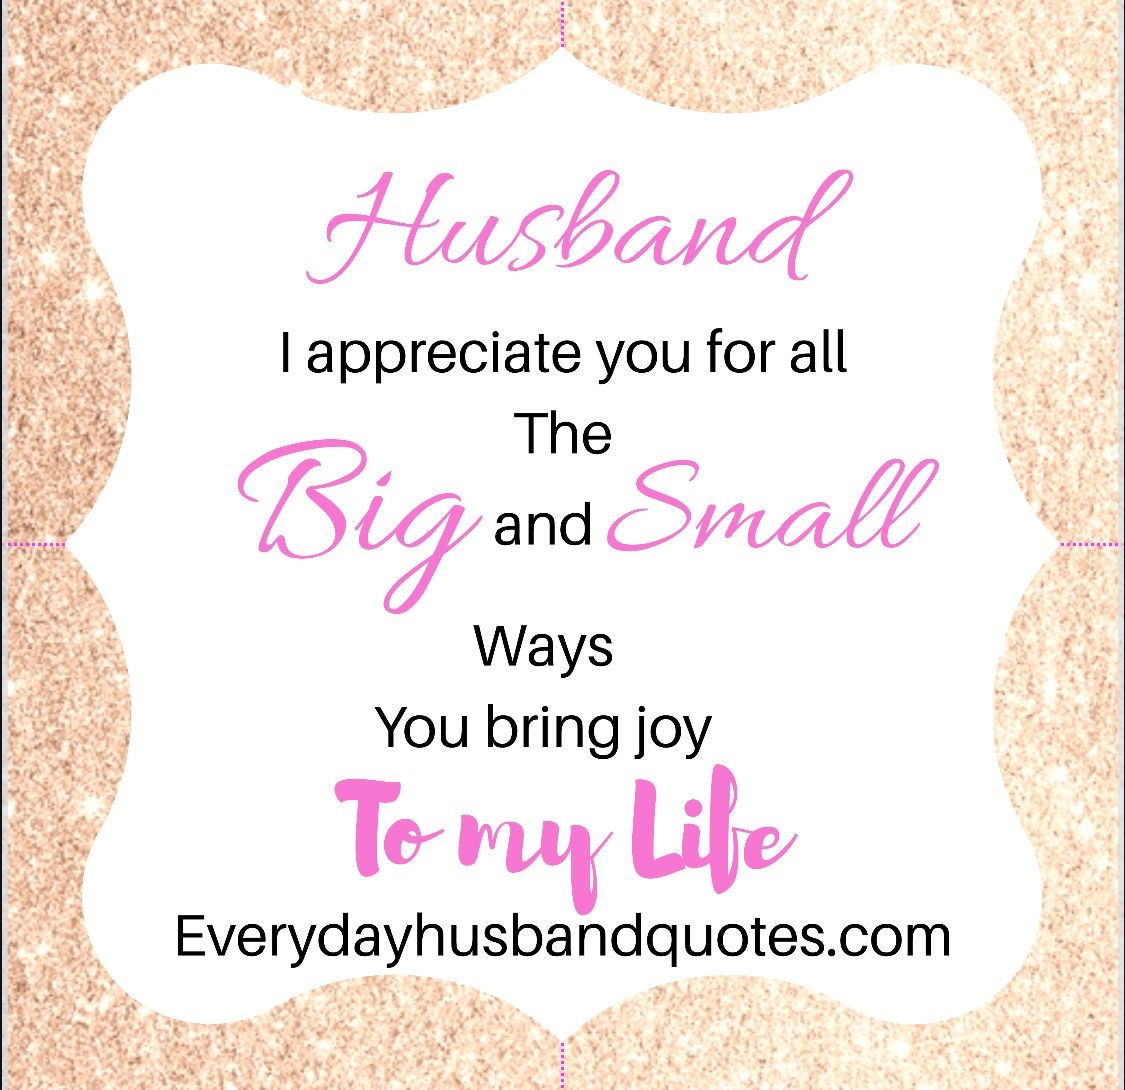 Family Love Quotes Thank You Hubby Tidbits Of What I Am Thankful